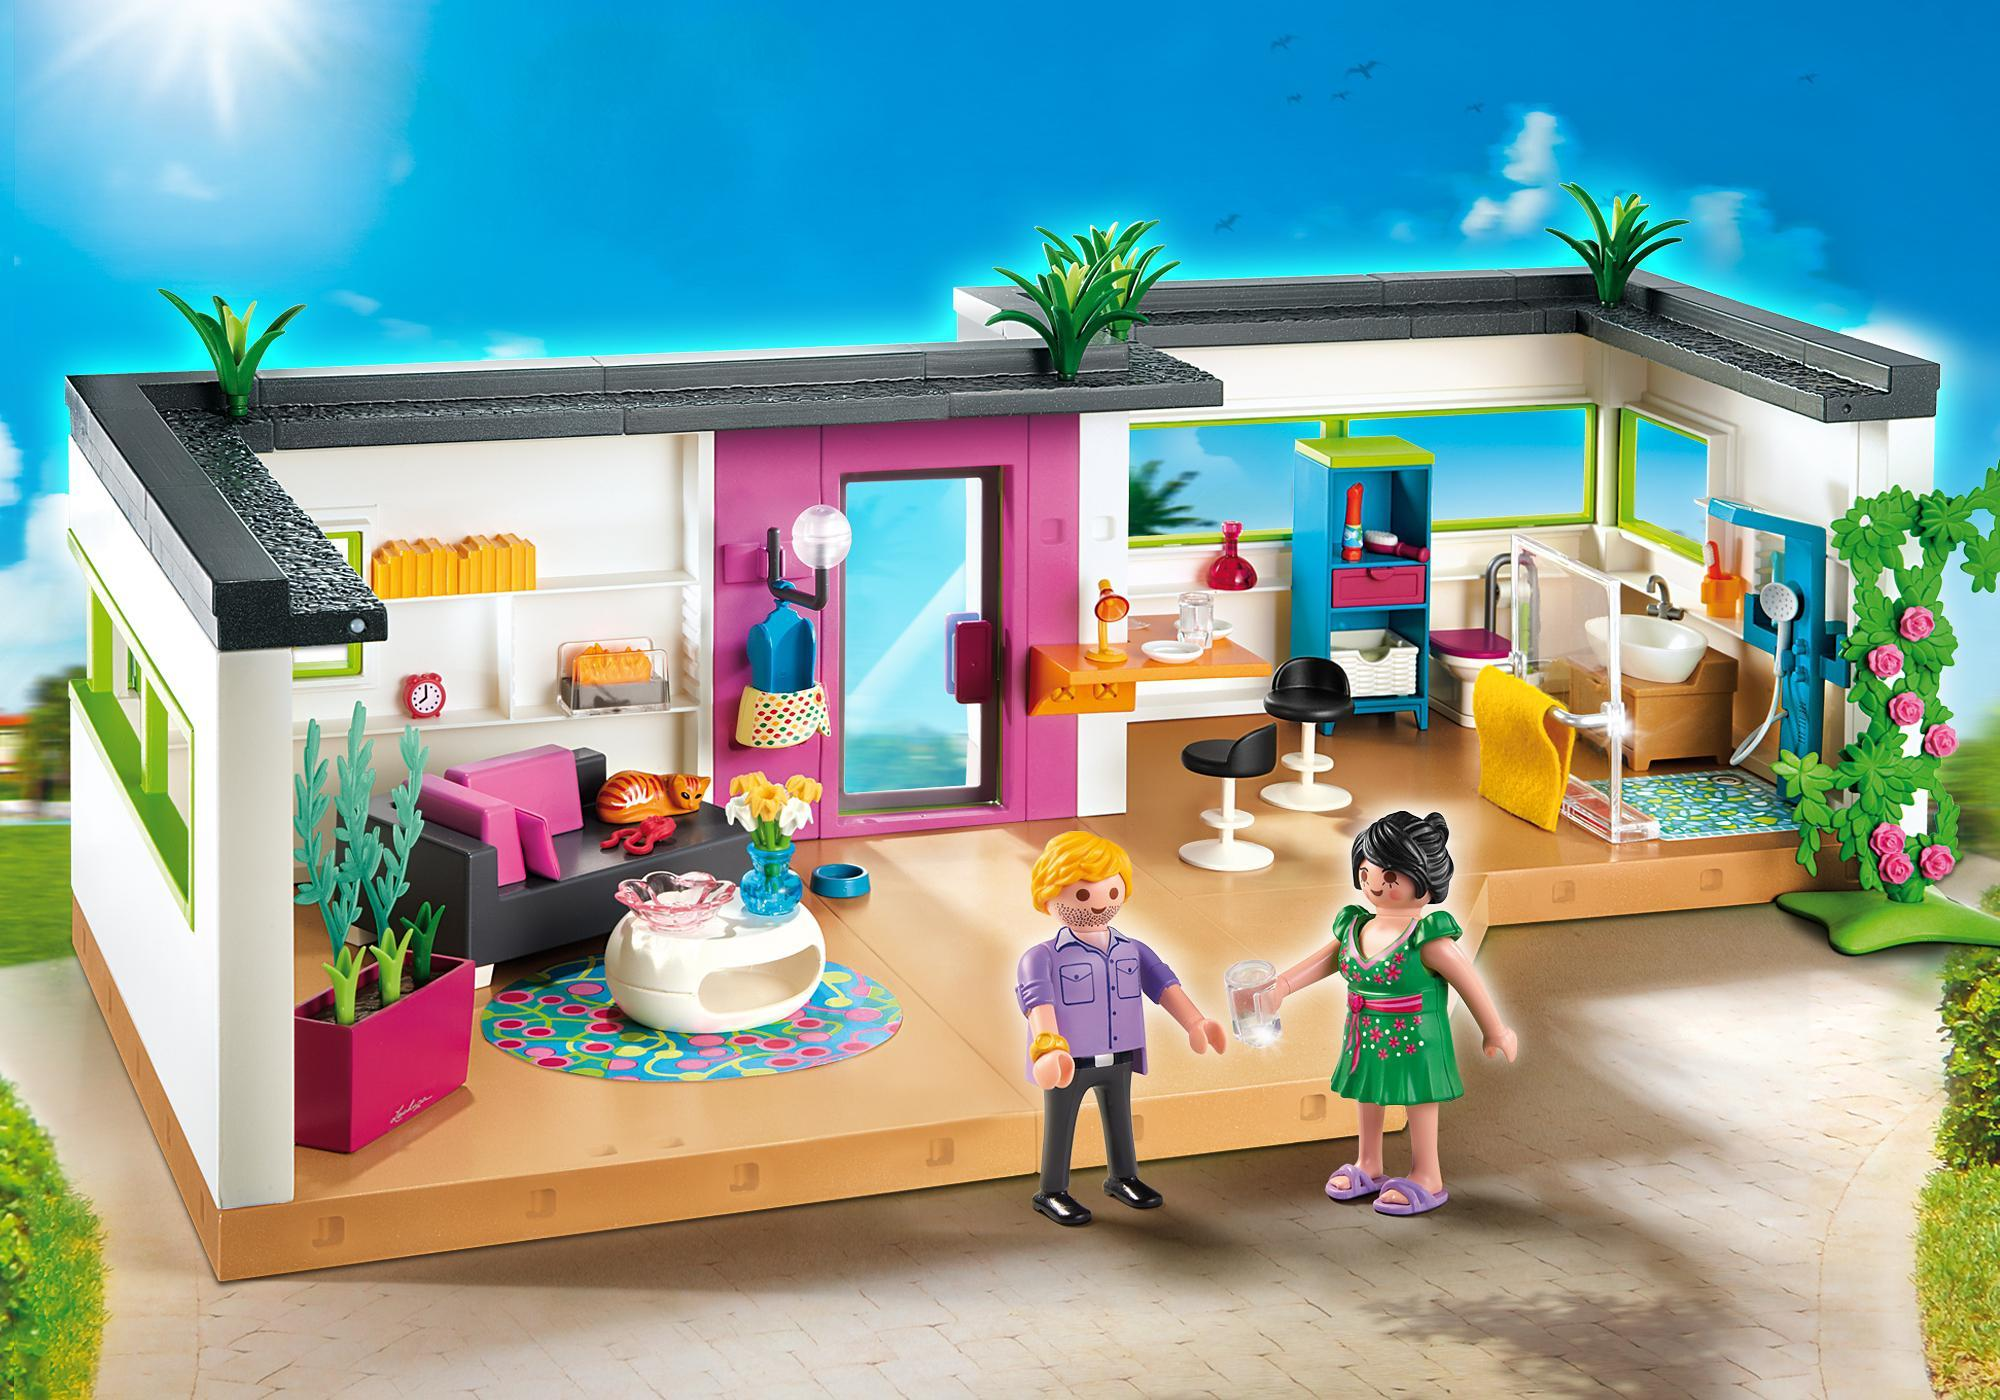 Agreable Http://media.playmobil.com/i/playmobil/5586_product_detail